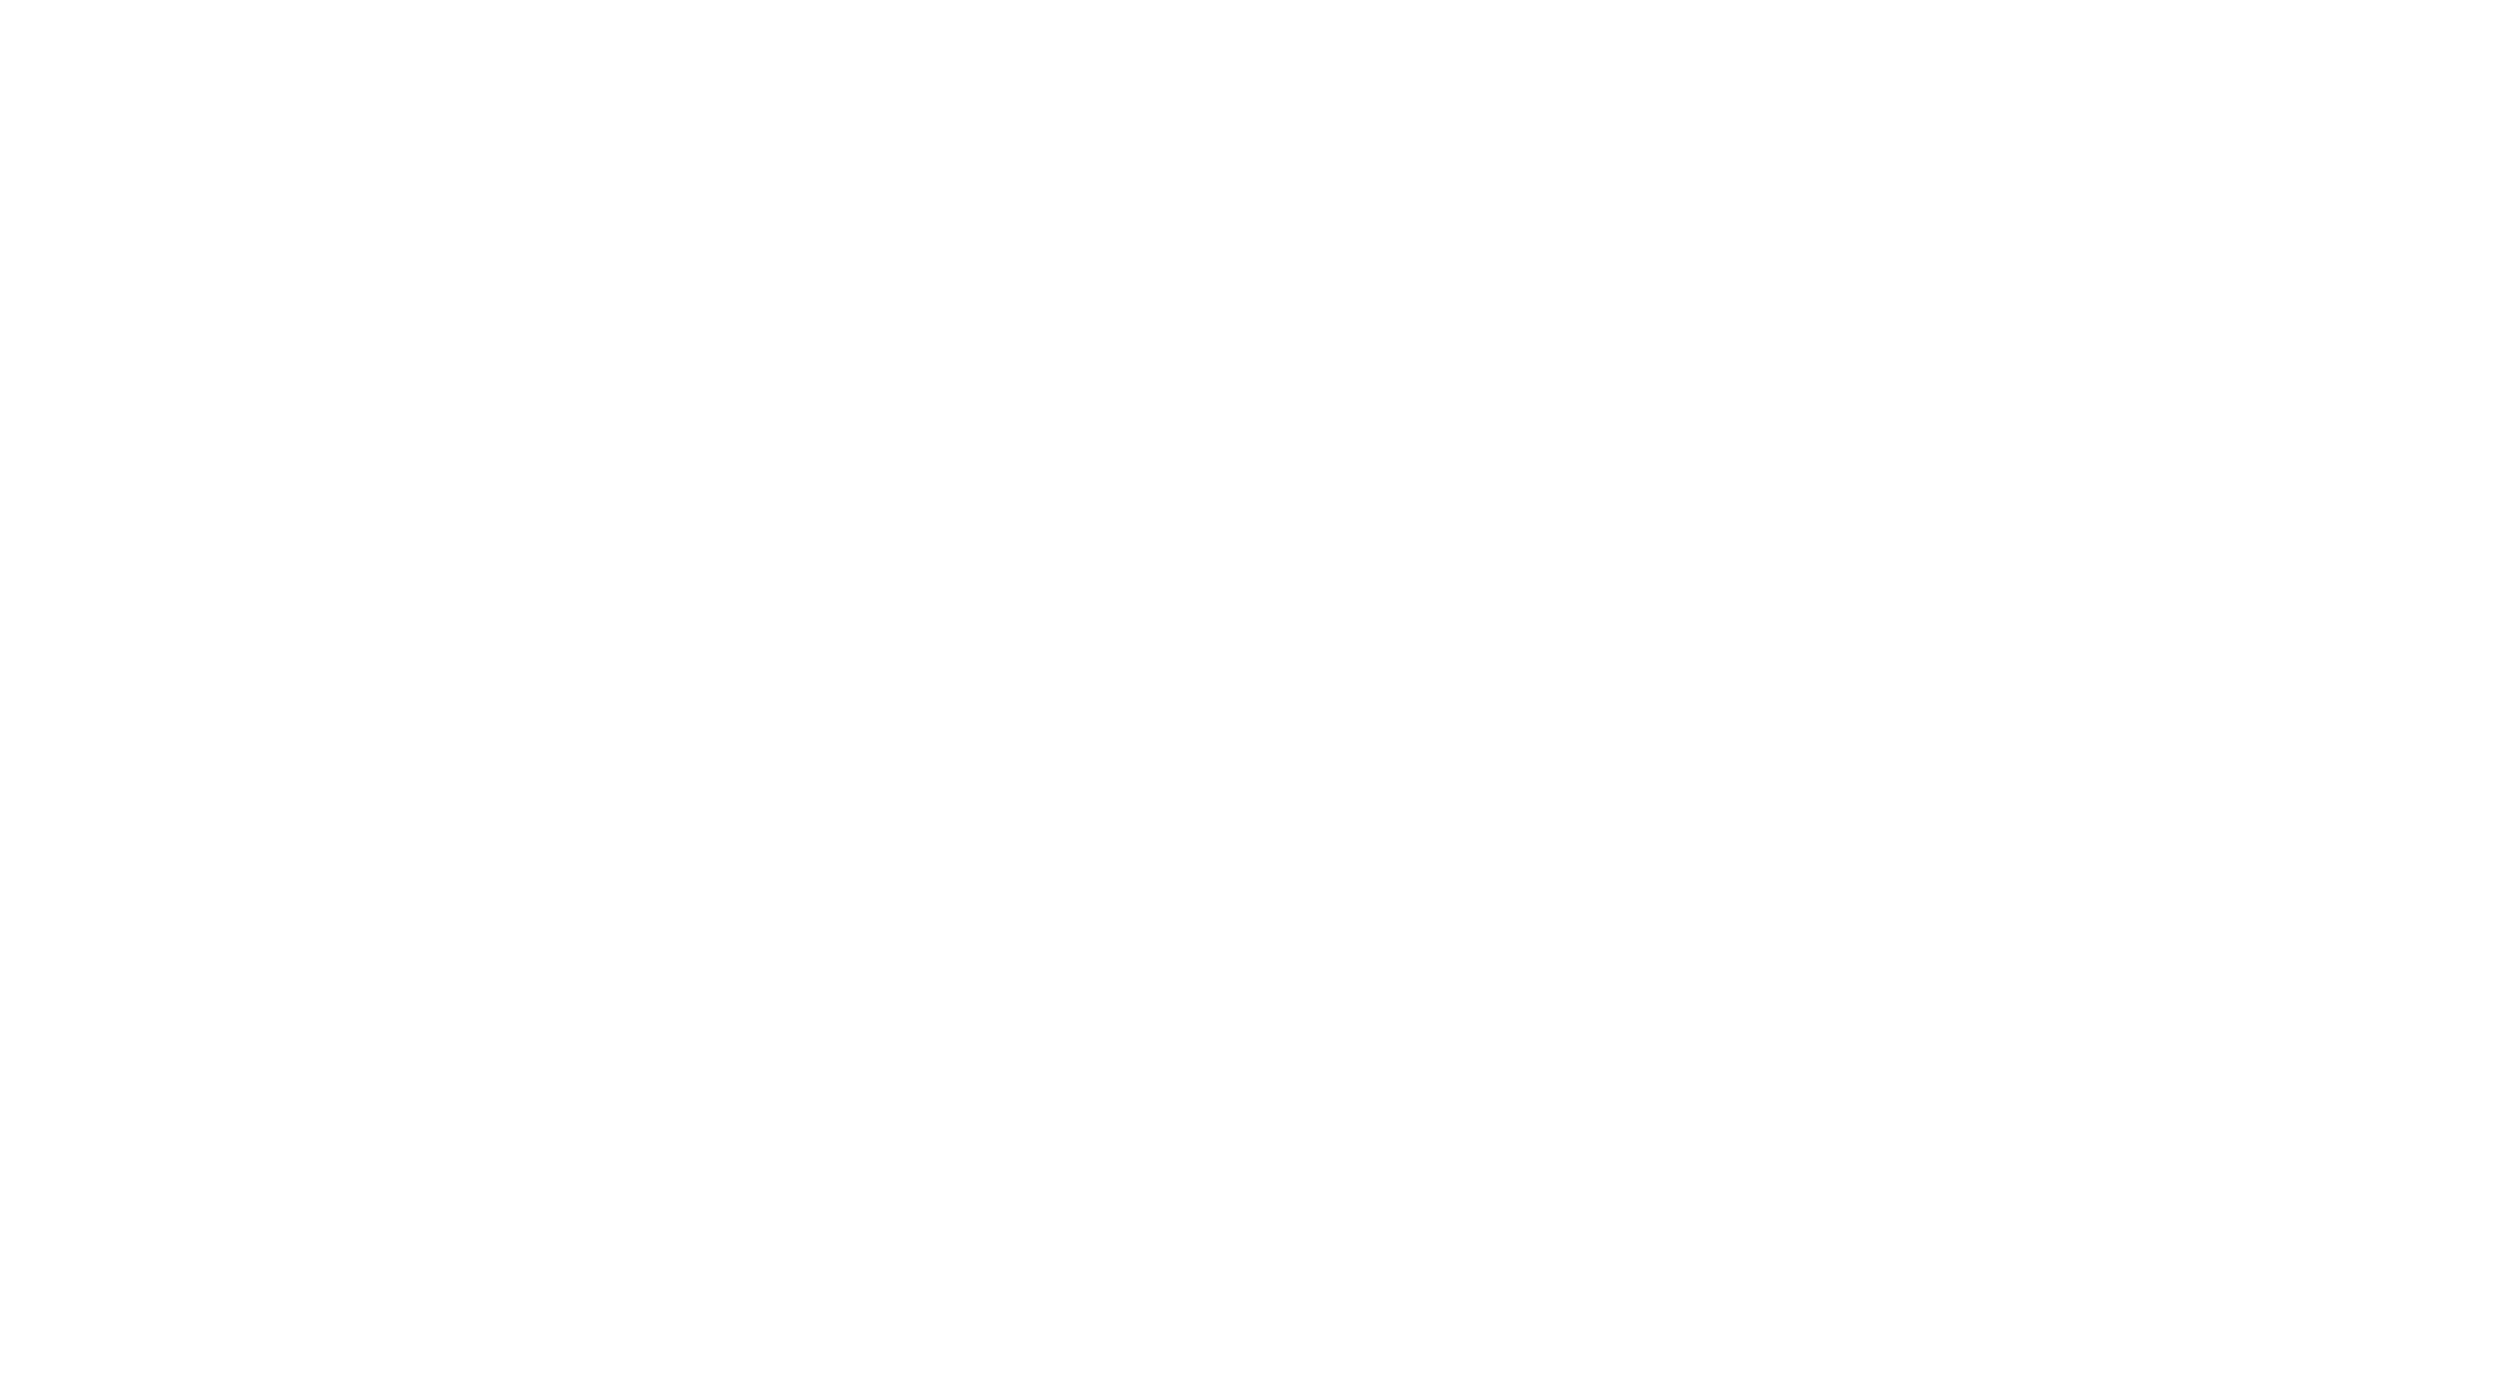 GreensGrains